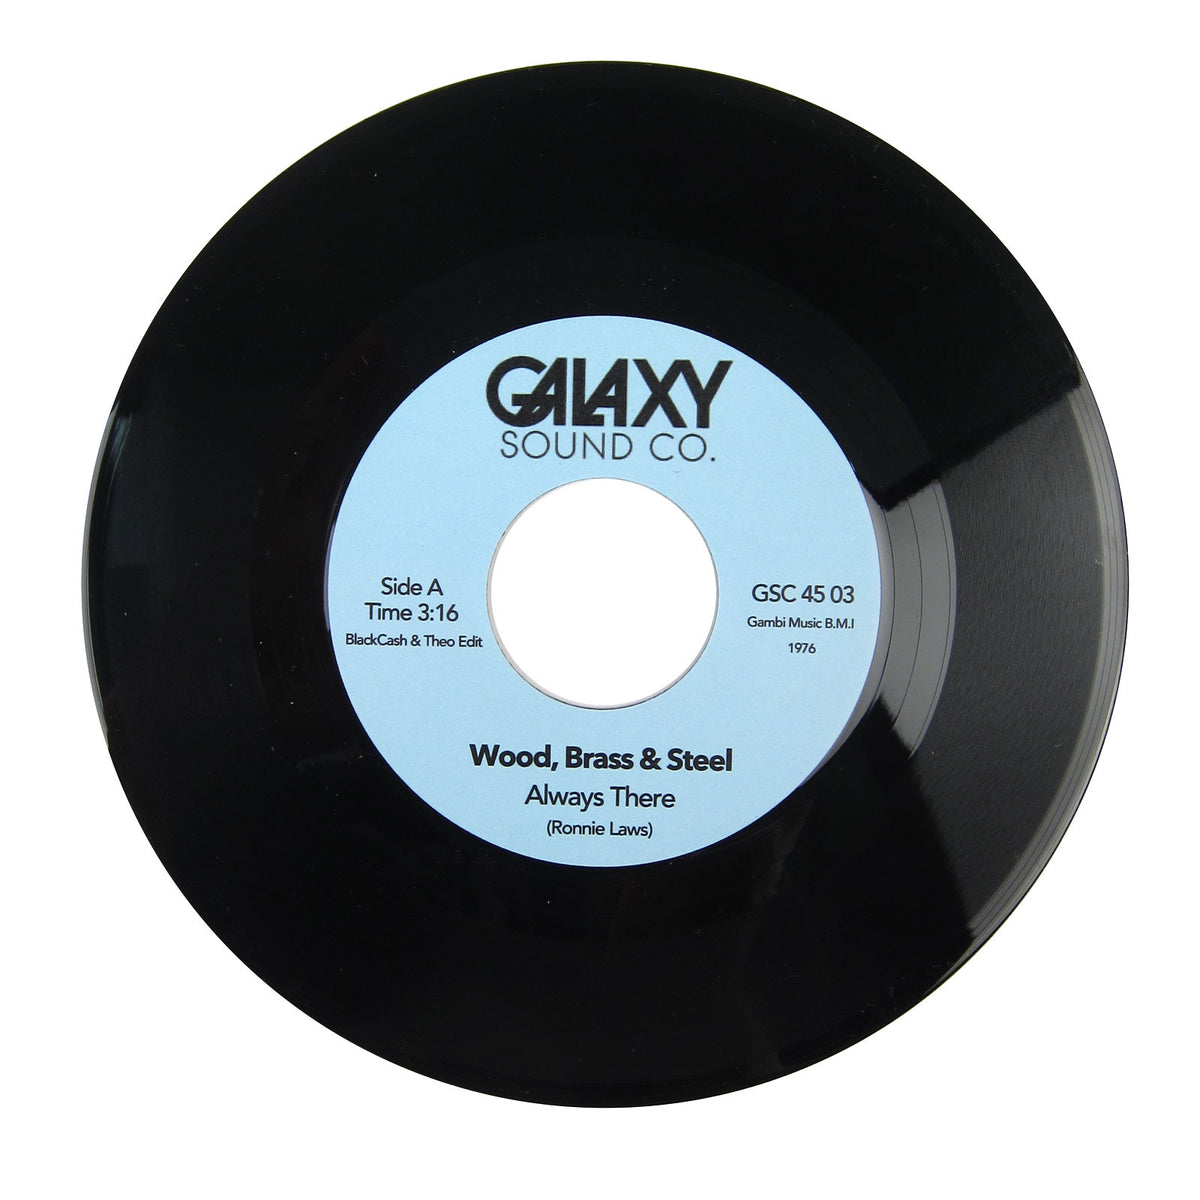 BlackCash & Theo: Galaxy Vol.3 (Wood Brass & Steel, Seaquence) Vinyl 7""